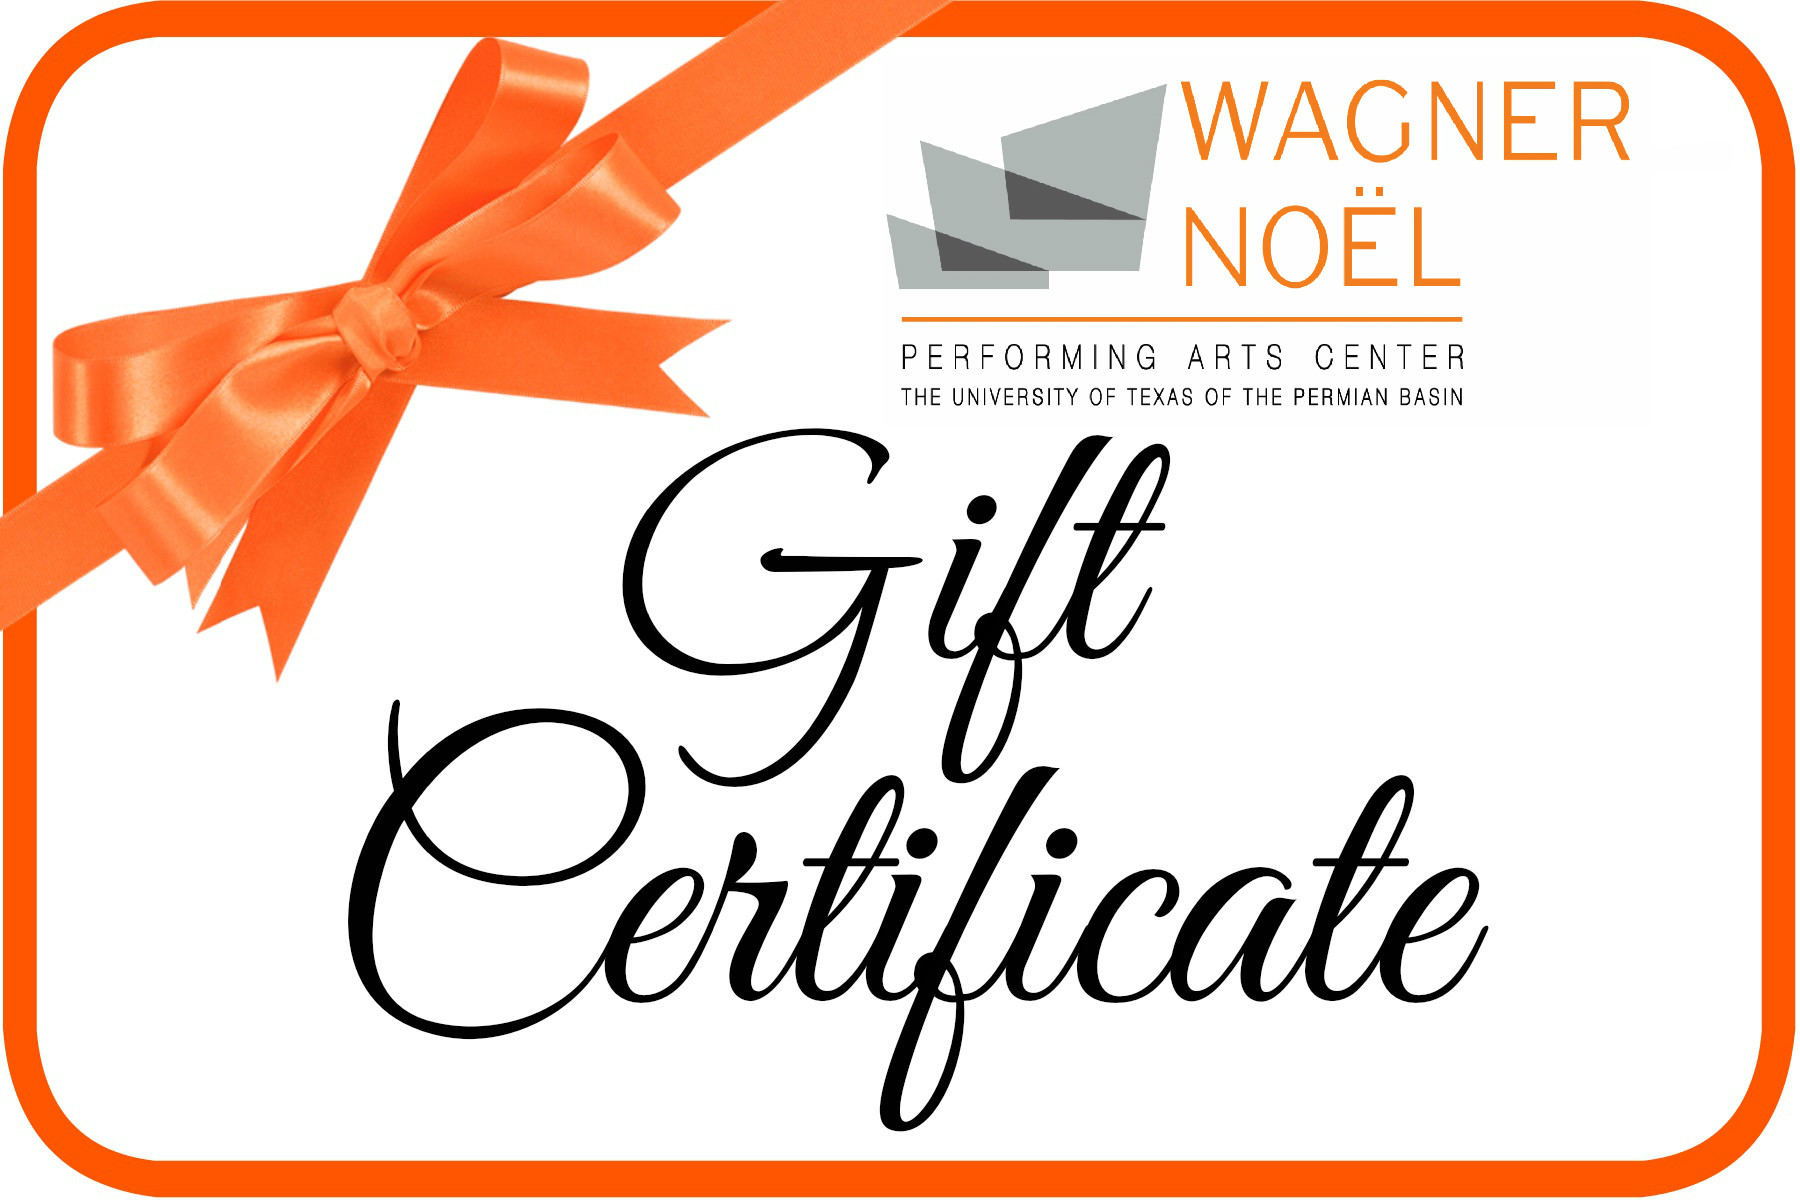 Image for Wagner Noël Gift Certificate - 2018